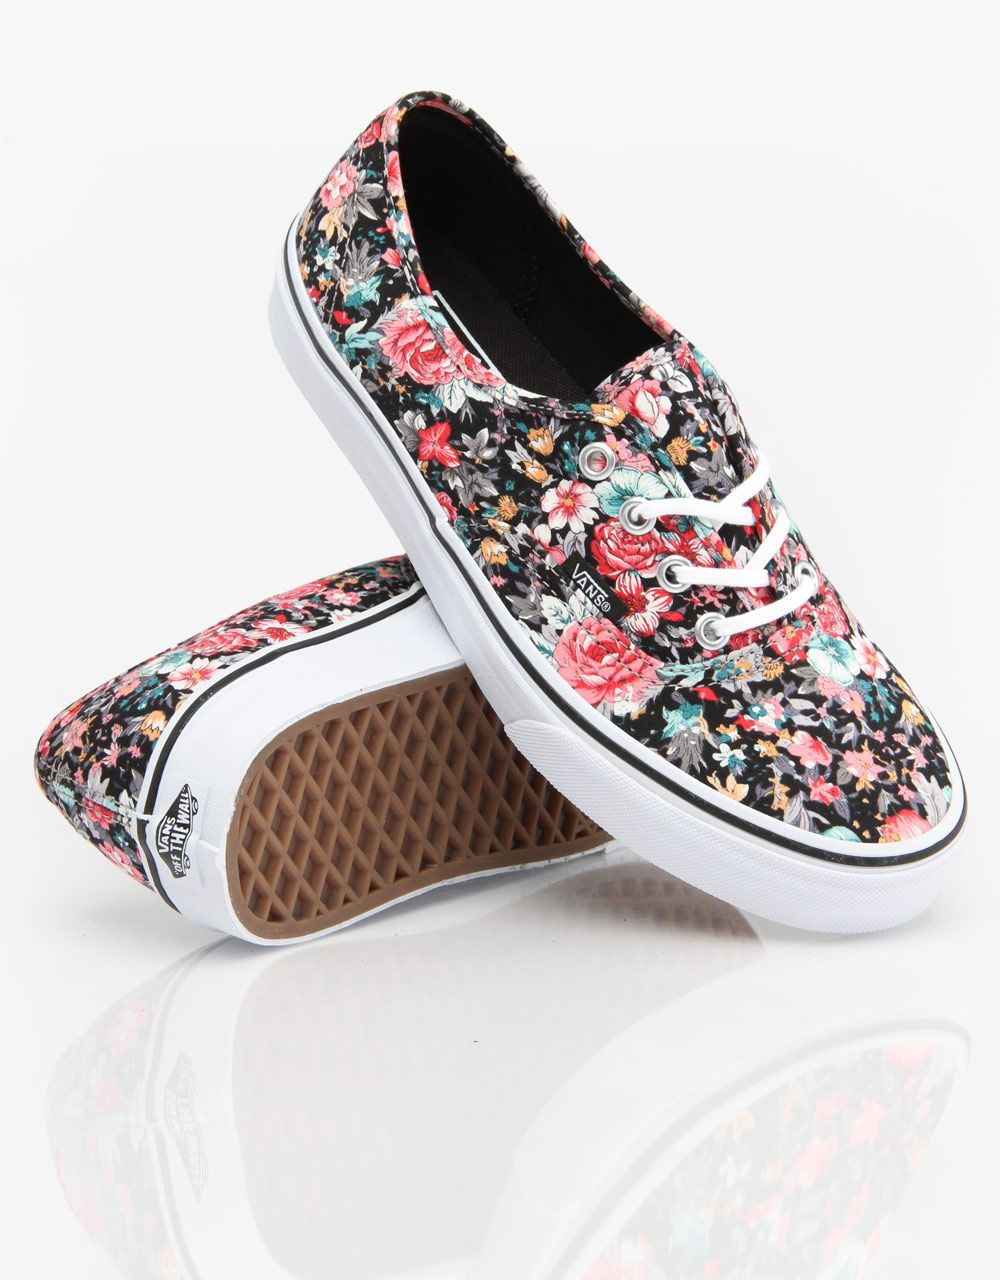 Girls Authentic Shoes Multi Floralblacktrue White Vans Skate QdtChsr